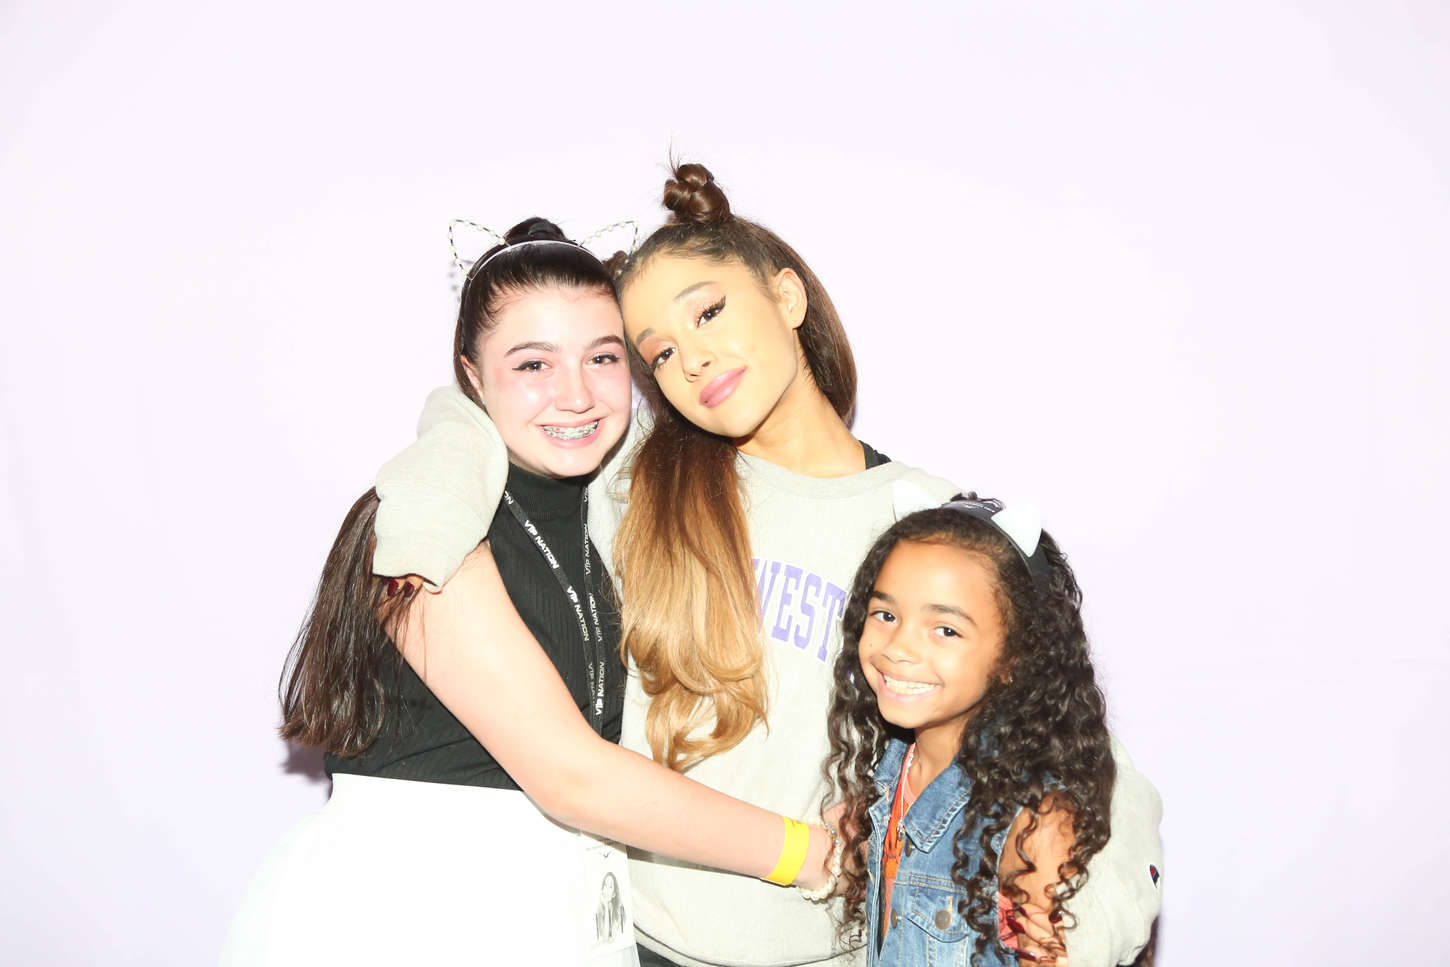 Ariana grande meet and greet in boise 17 gotceleb ariana grande meet and greet in boise 17 full size m4hsunfo